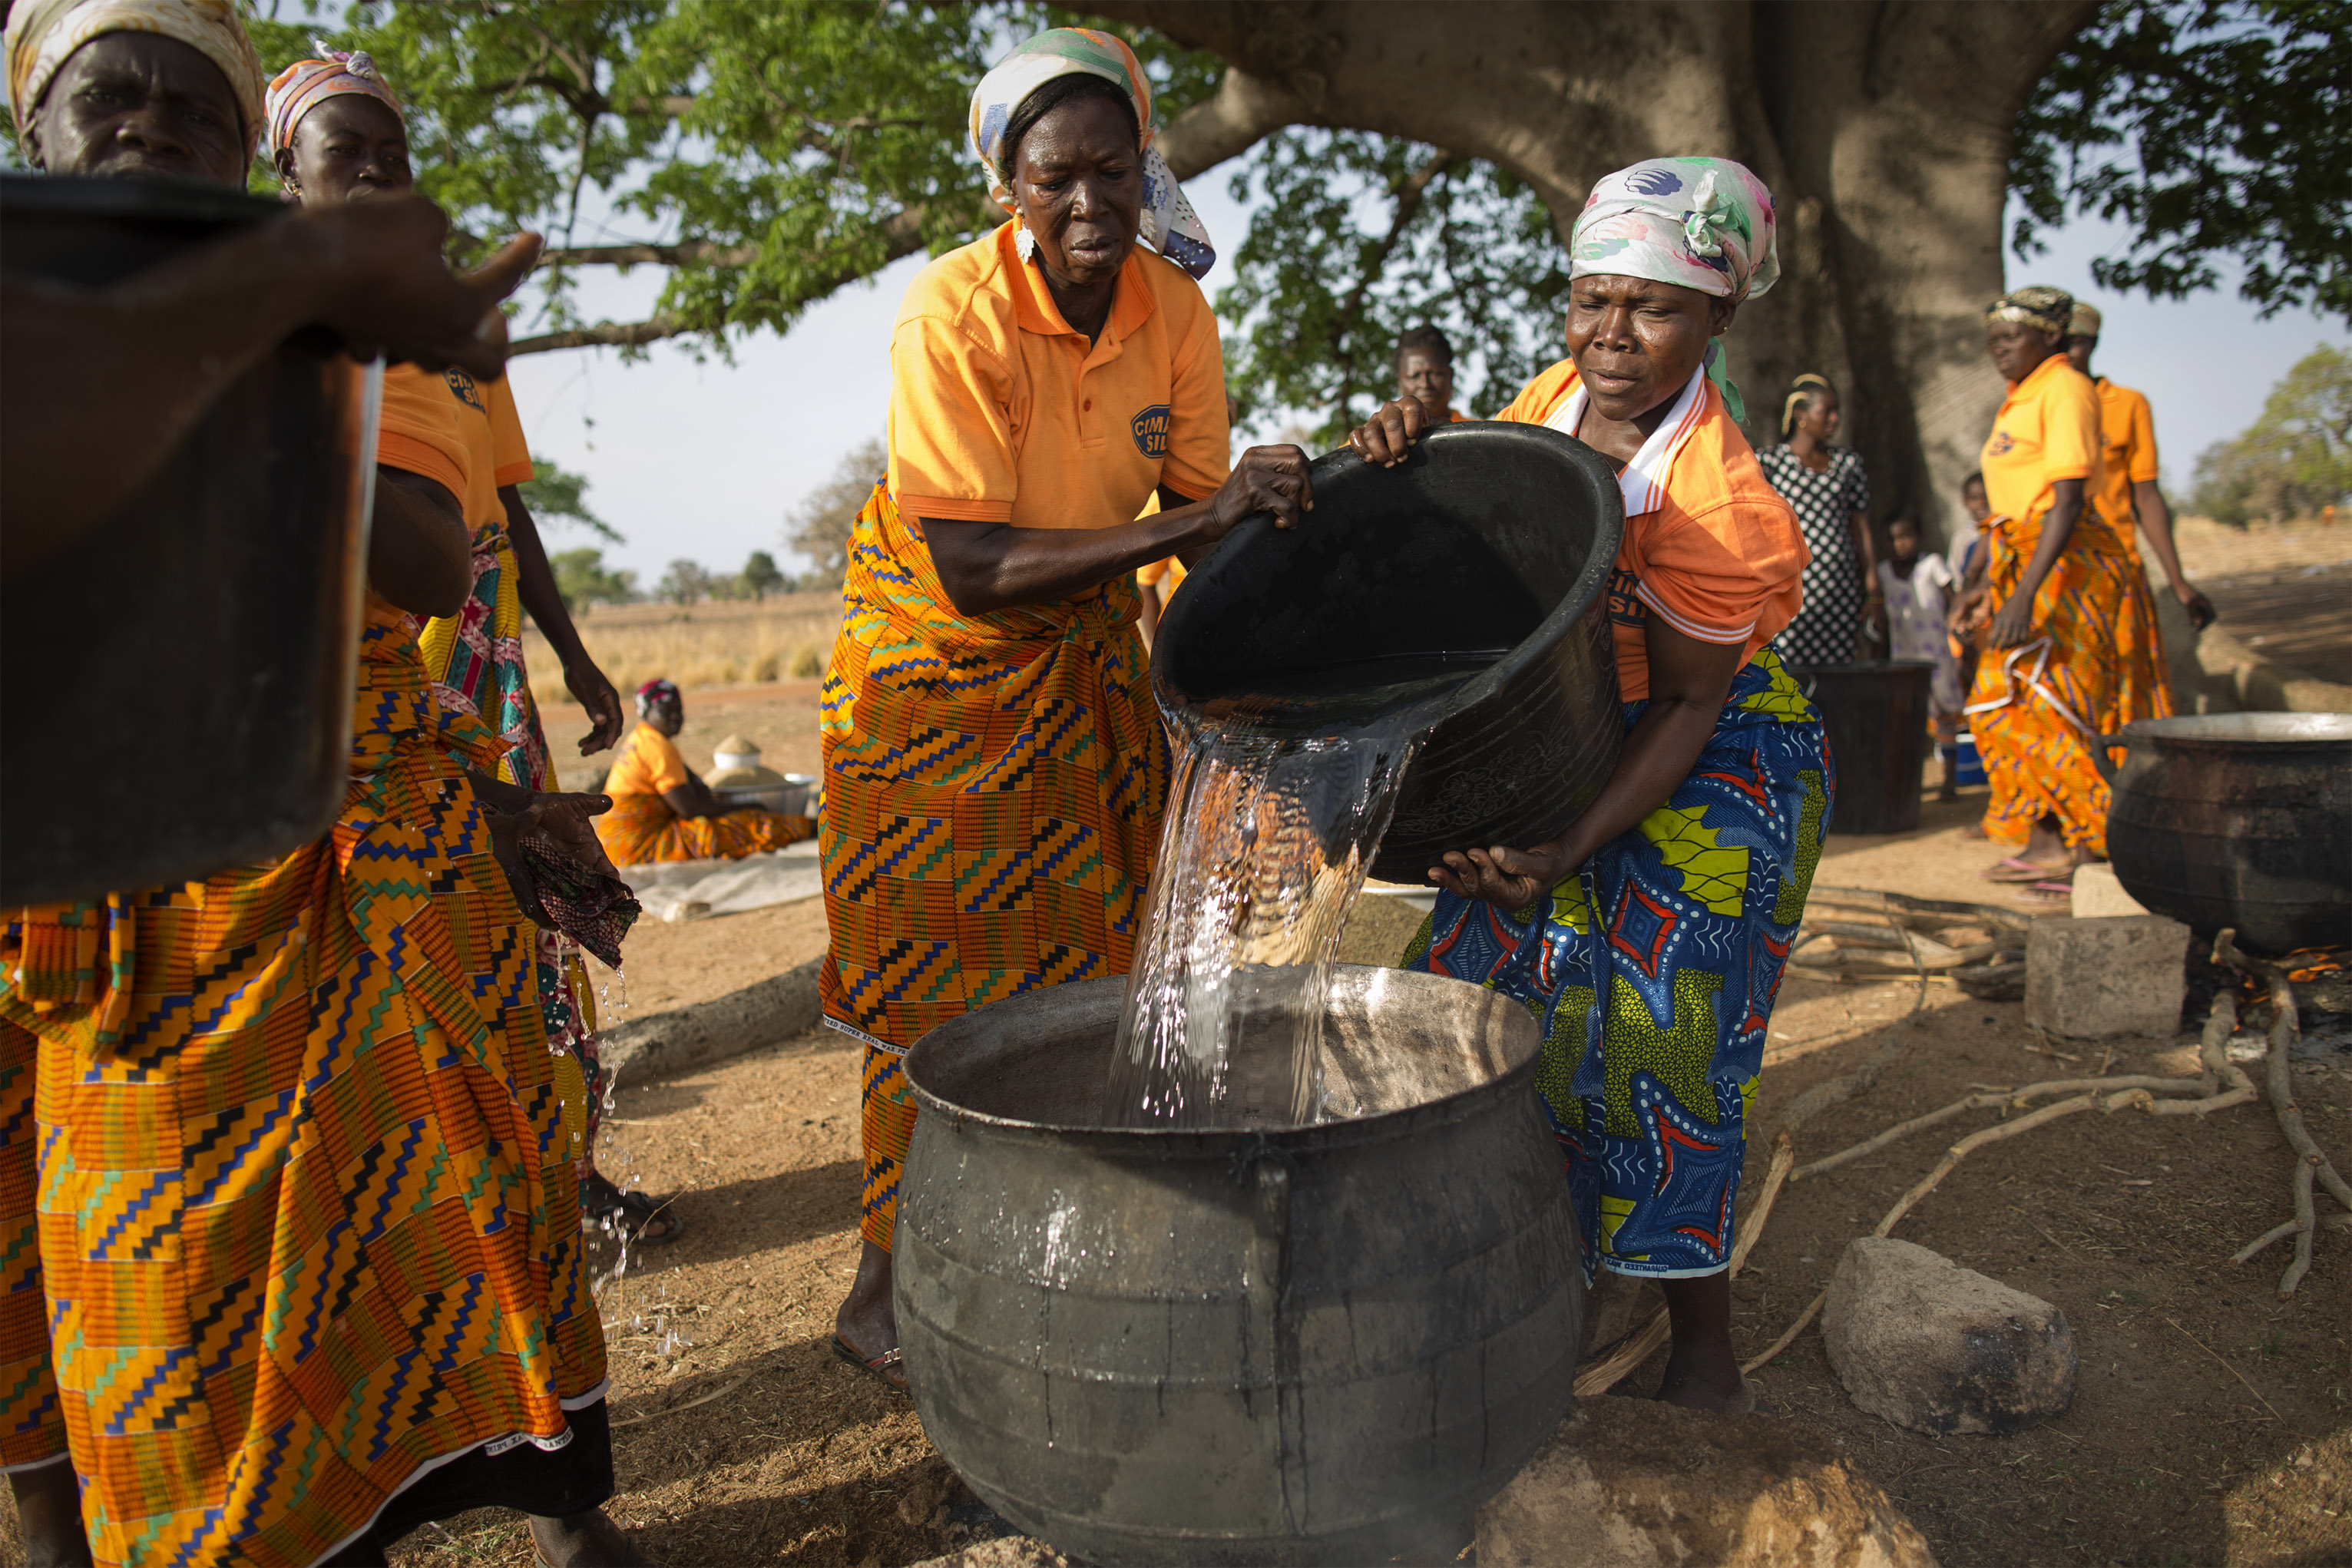 When rising temperatures bring destructive weather patterns and cause crops to wither, the women in Awaradoni village work together as a support system. Here, they are processing and making rice. Photo by Jake Lyell for CRS